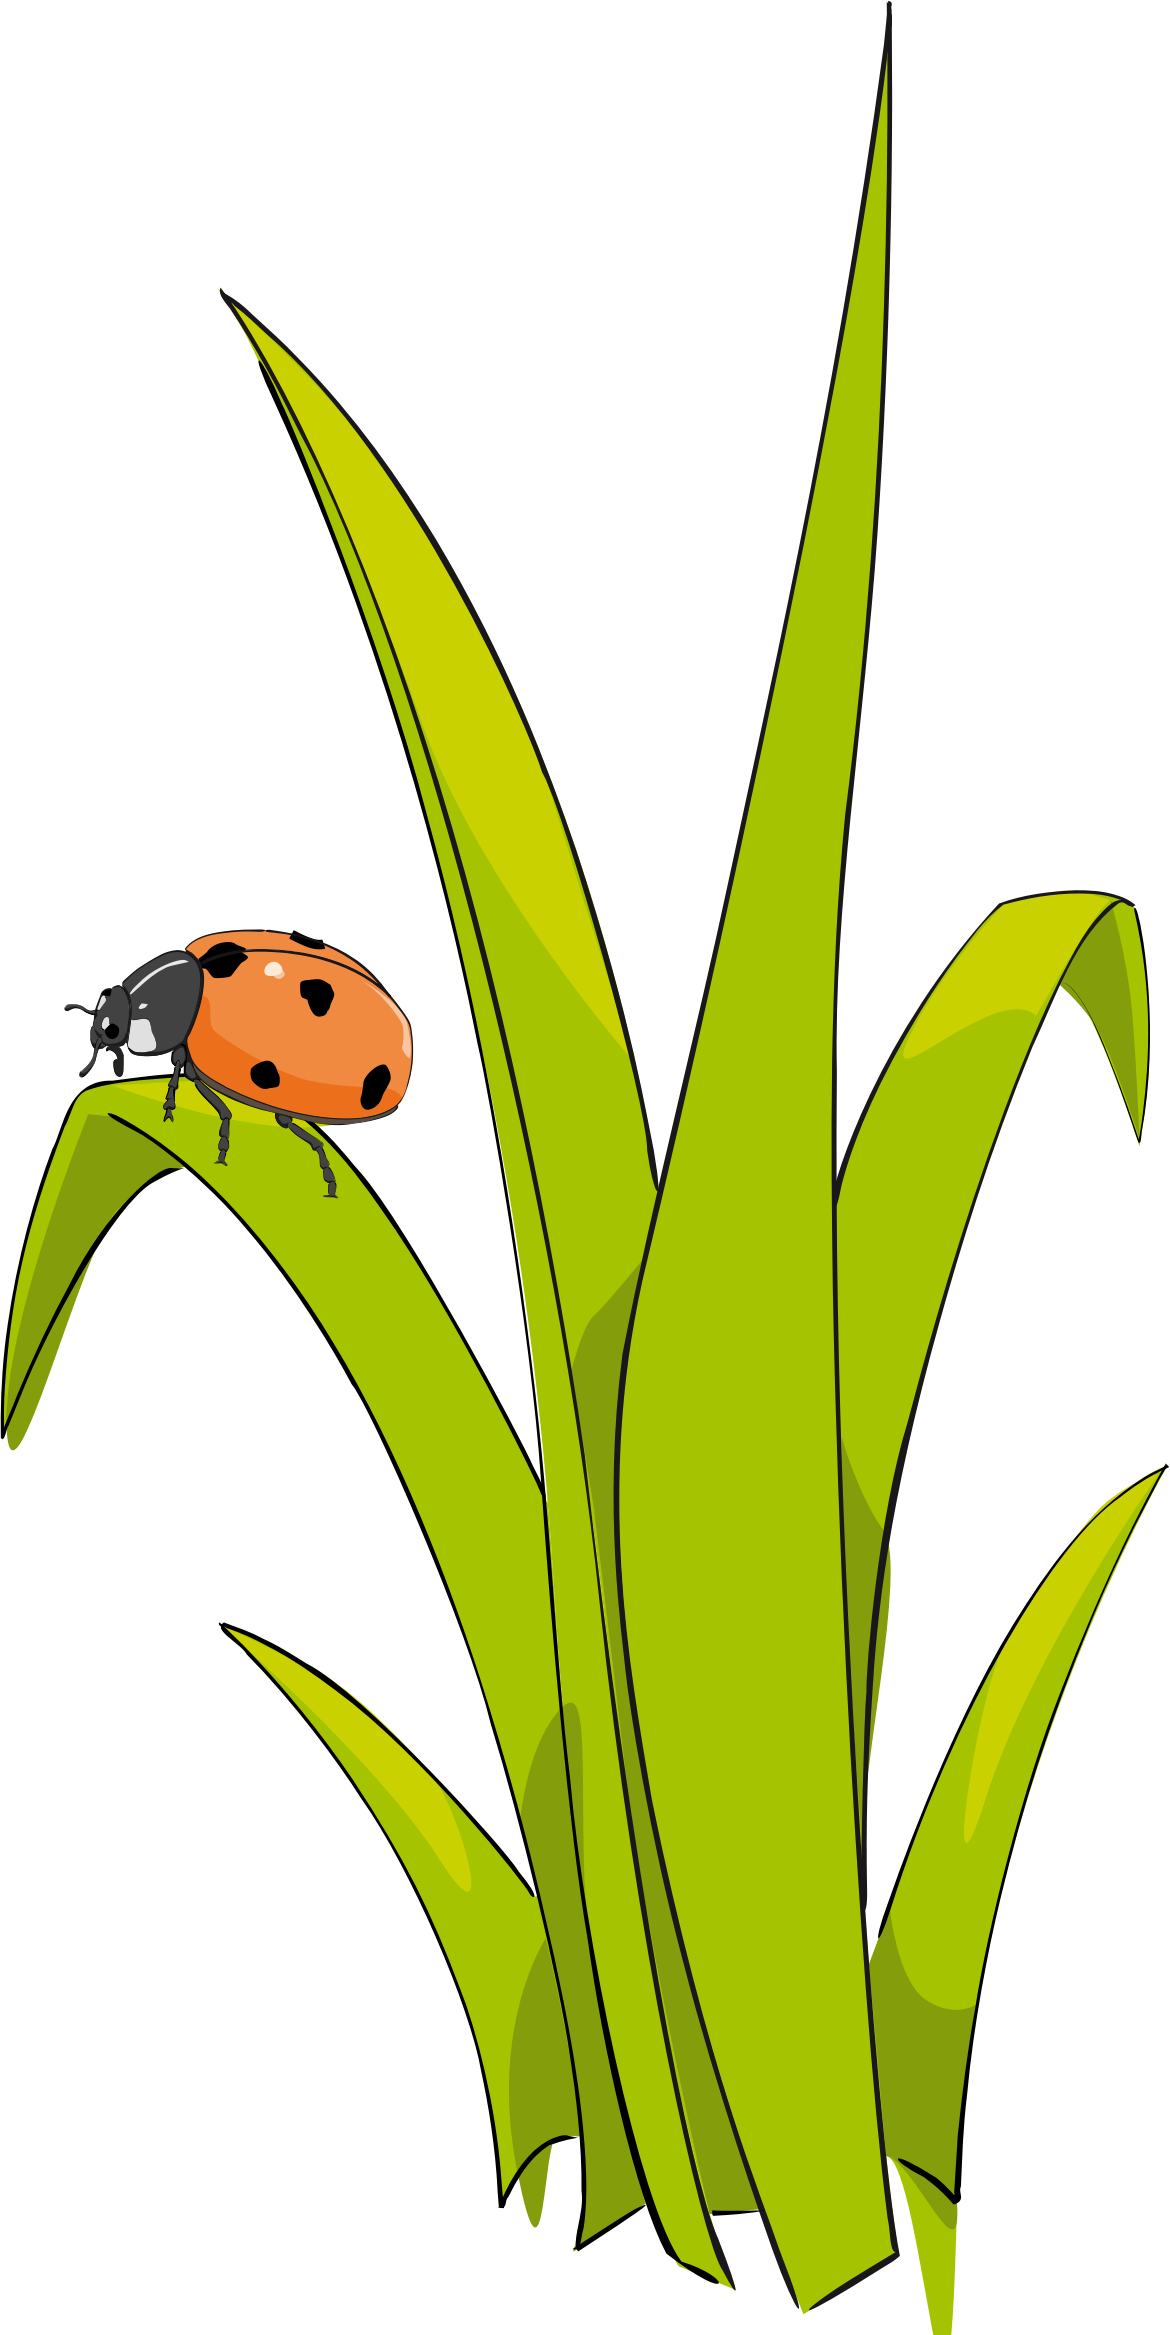 Coccinelle sur brin d_herbe - Ladybird on blade of grass. by enolynn